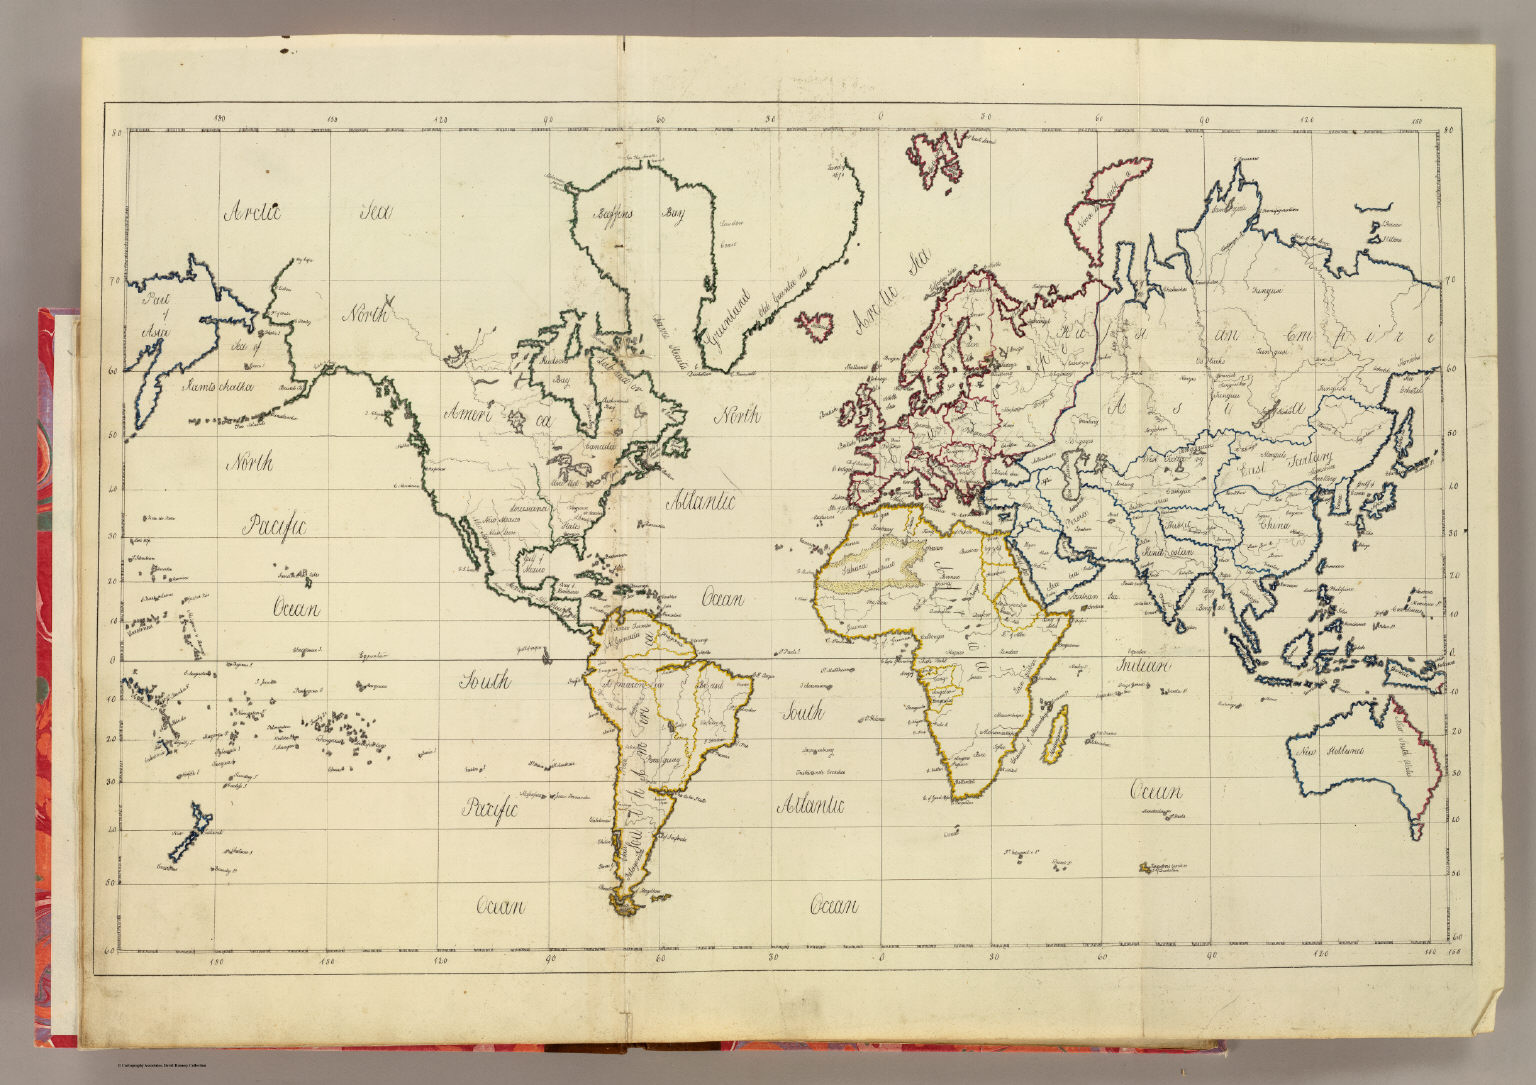 Old map great britain the gallery for antique nautical maps 2012 geodesy old world map of england gumiabroncs Gallery